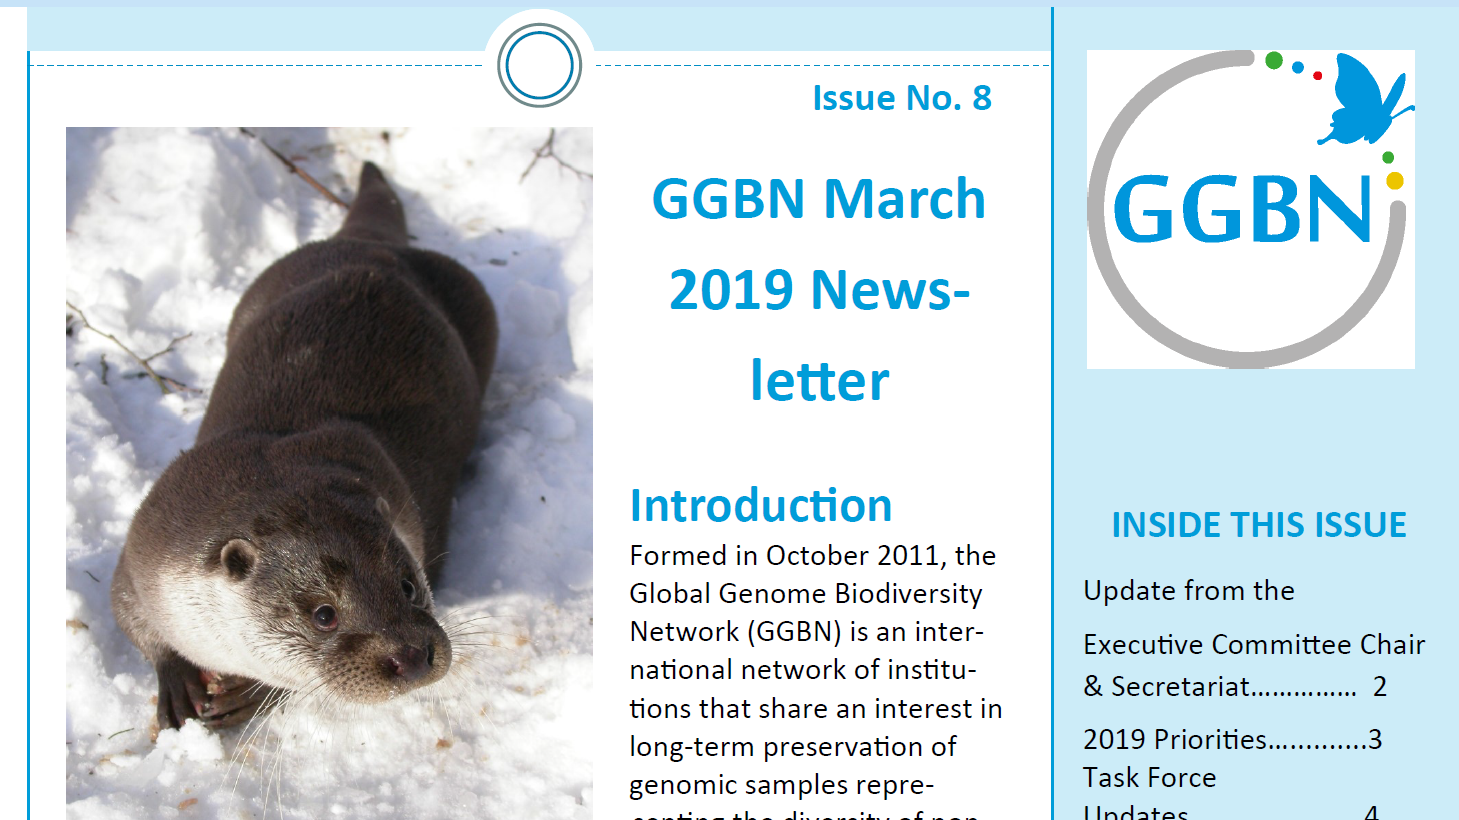 GGBN2019Newsletter.png